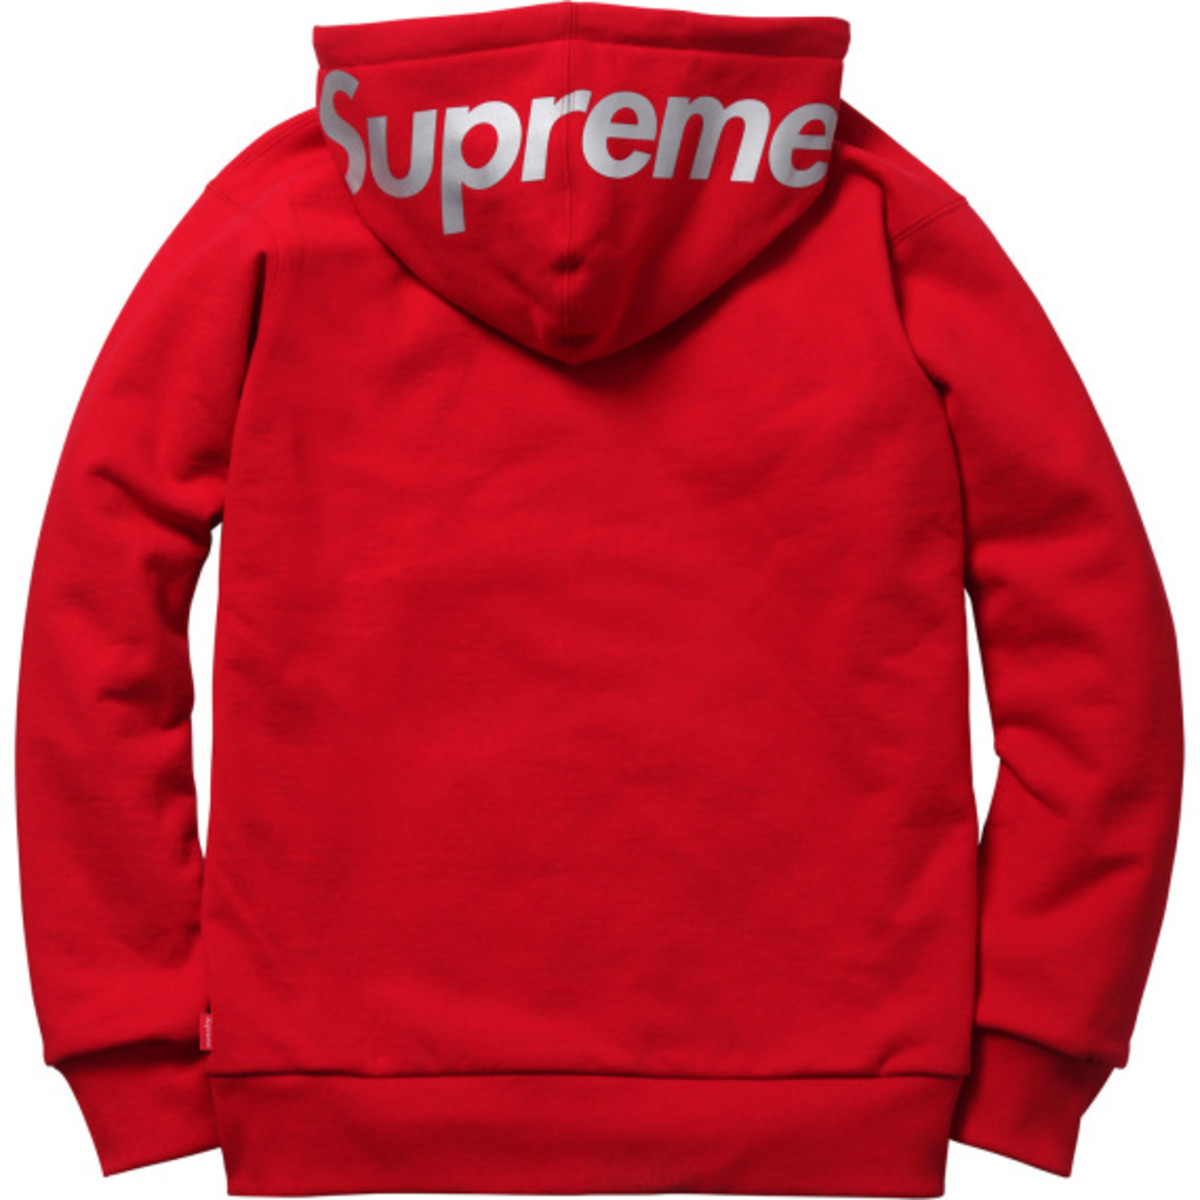 Supreme 3M Reflective Logo Thermal Zip-Up Hoodies | Available Now - 15